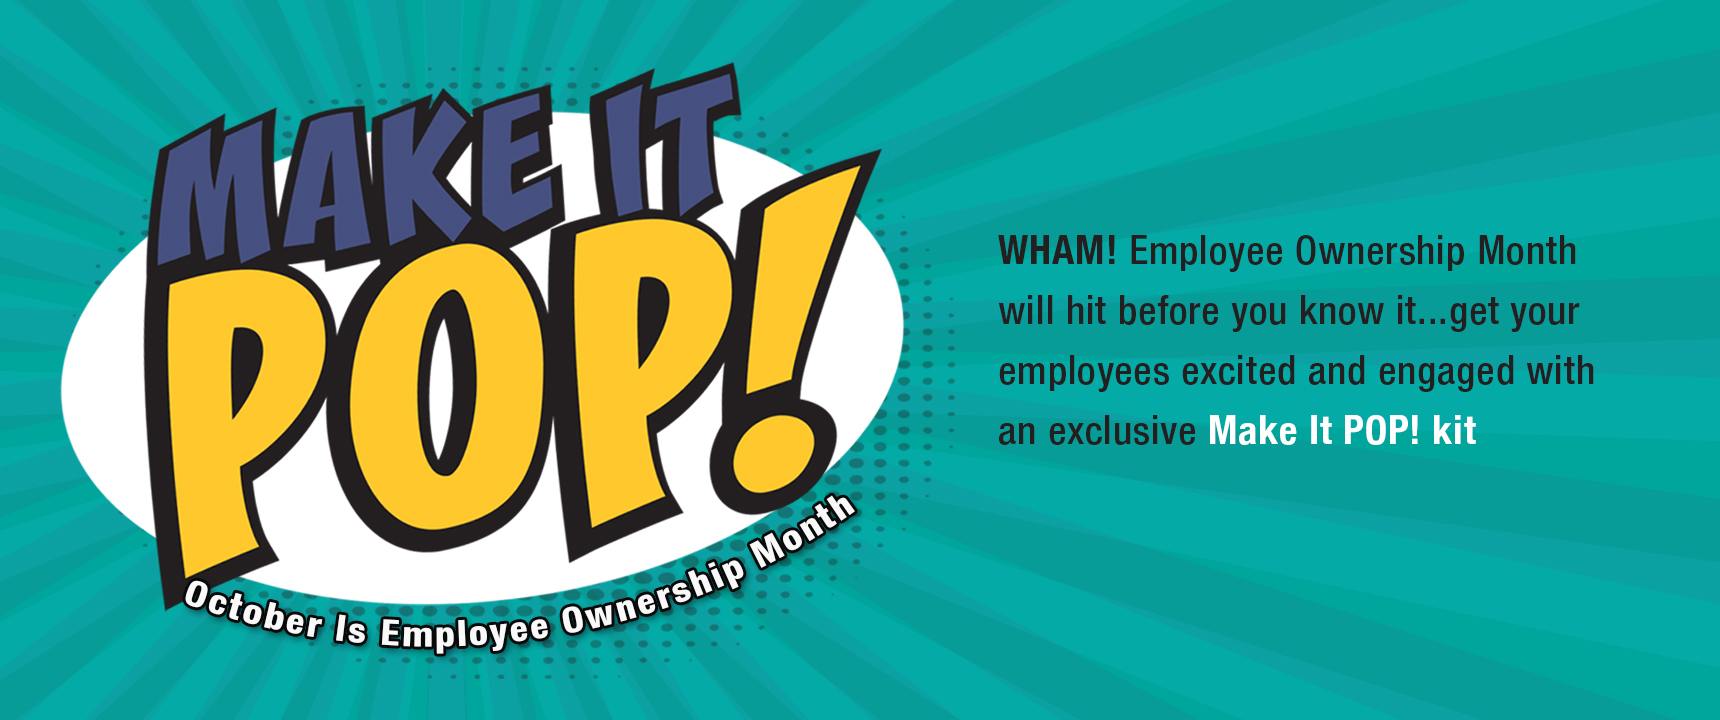 Employee Ownership Month will hit before you know it. Get your employees excited and engaged with an exclusive Make It Pop! kit.